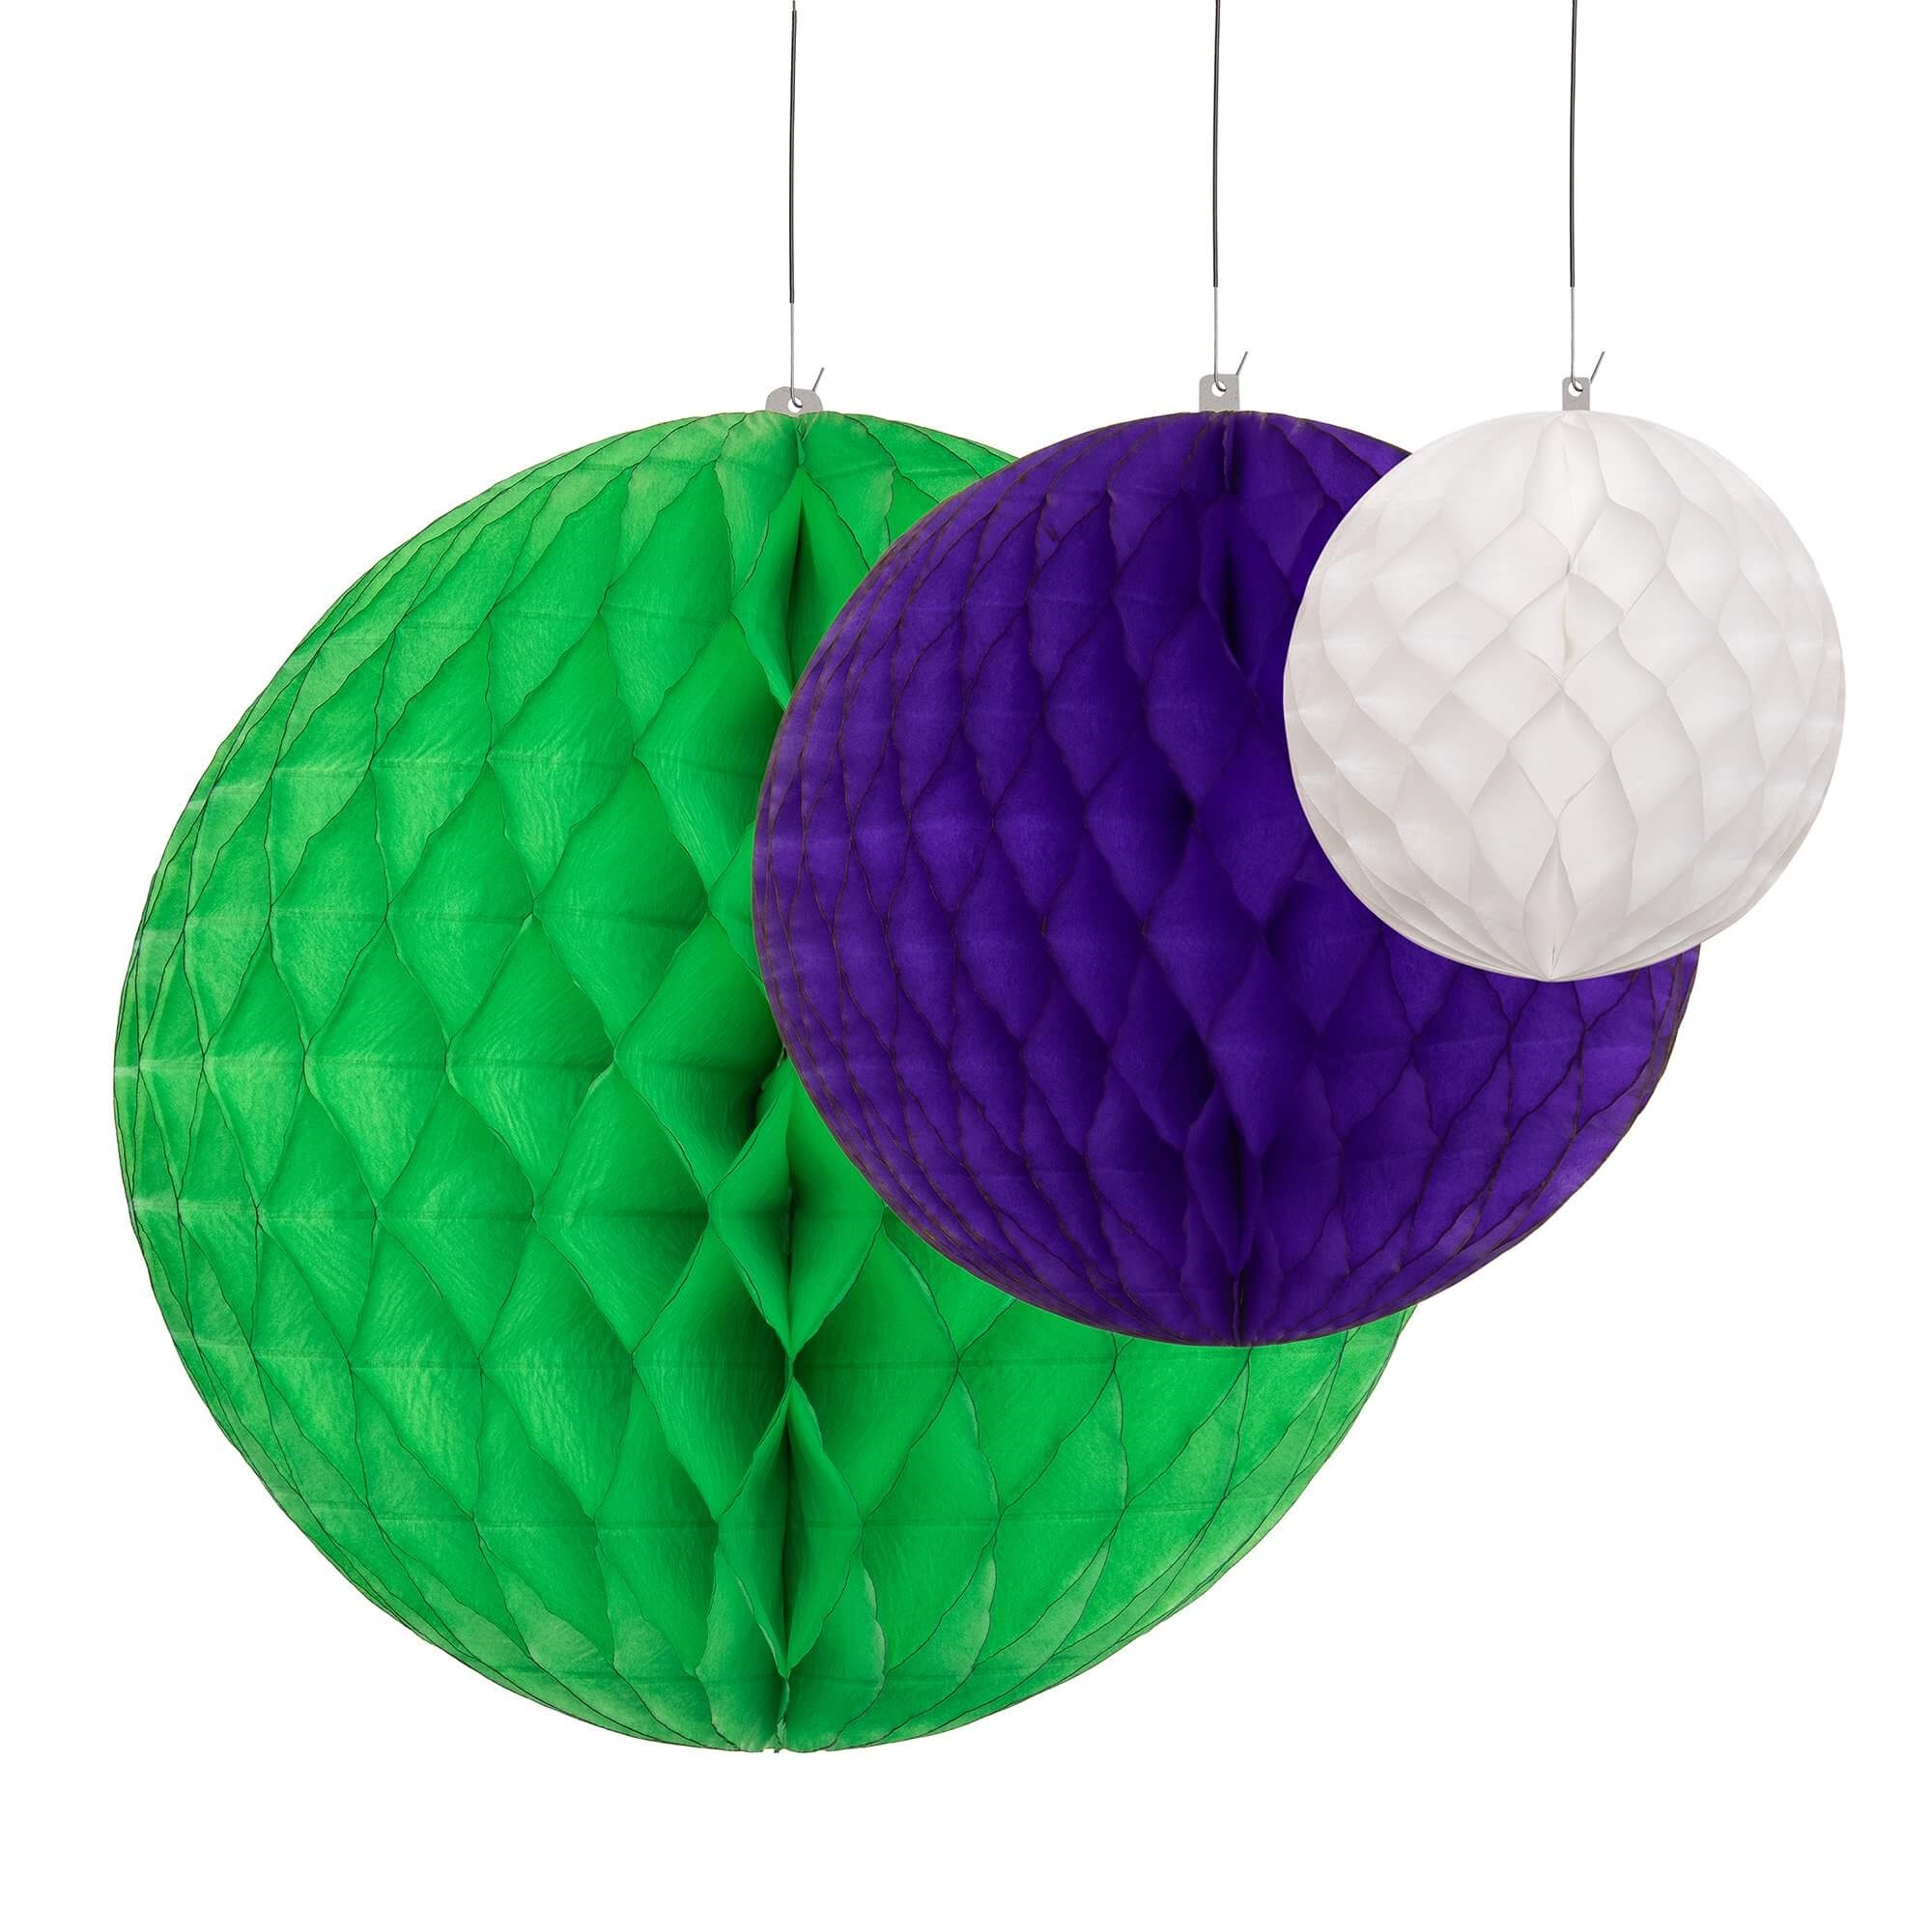 Honeycomb ball decorations in green, purple and white